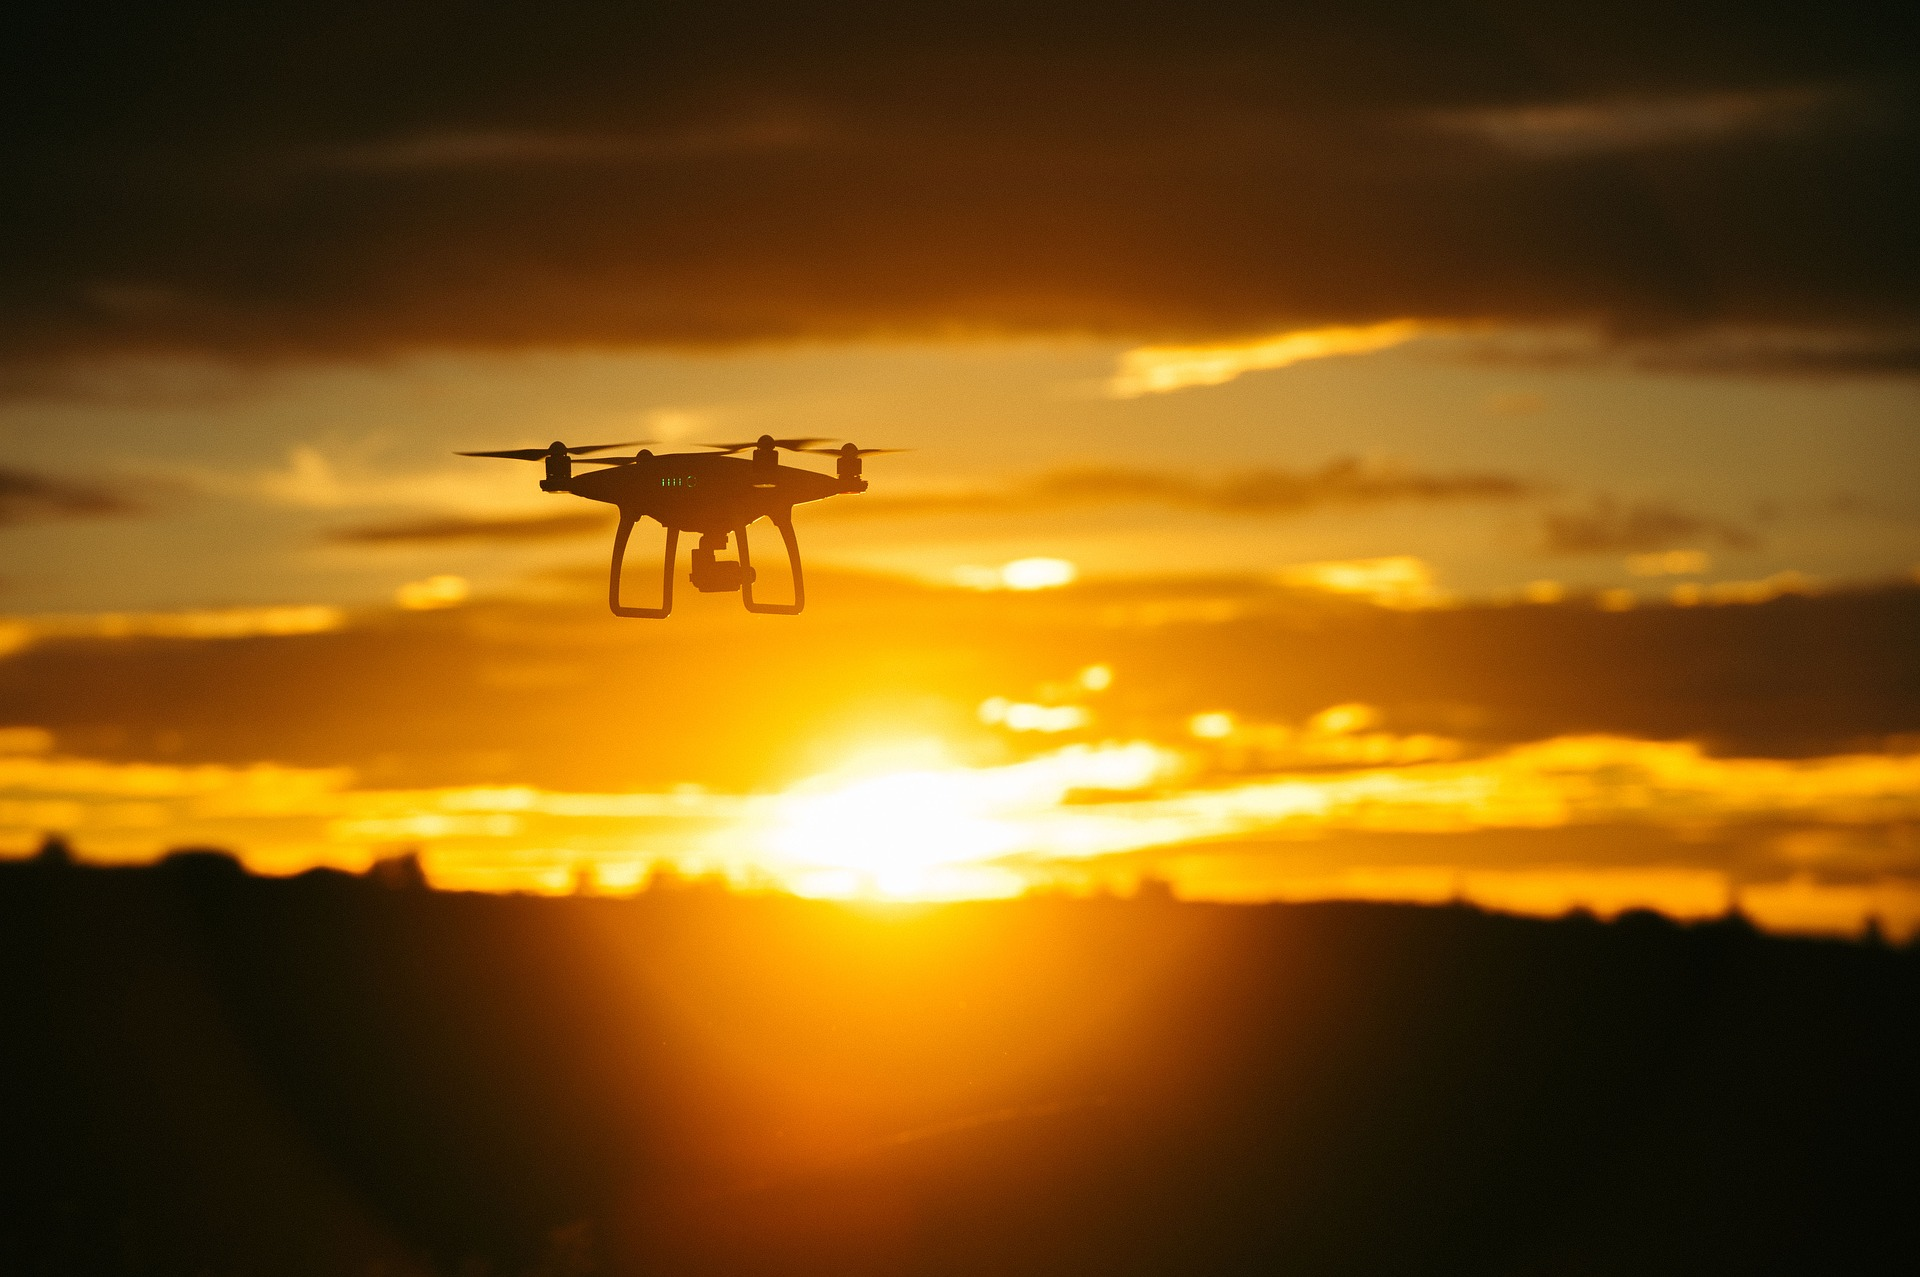 How are drones changing the roofing industry